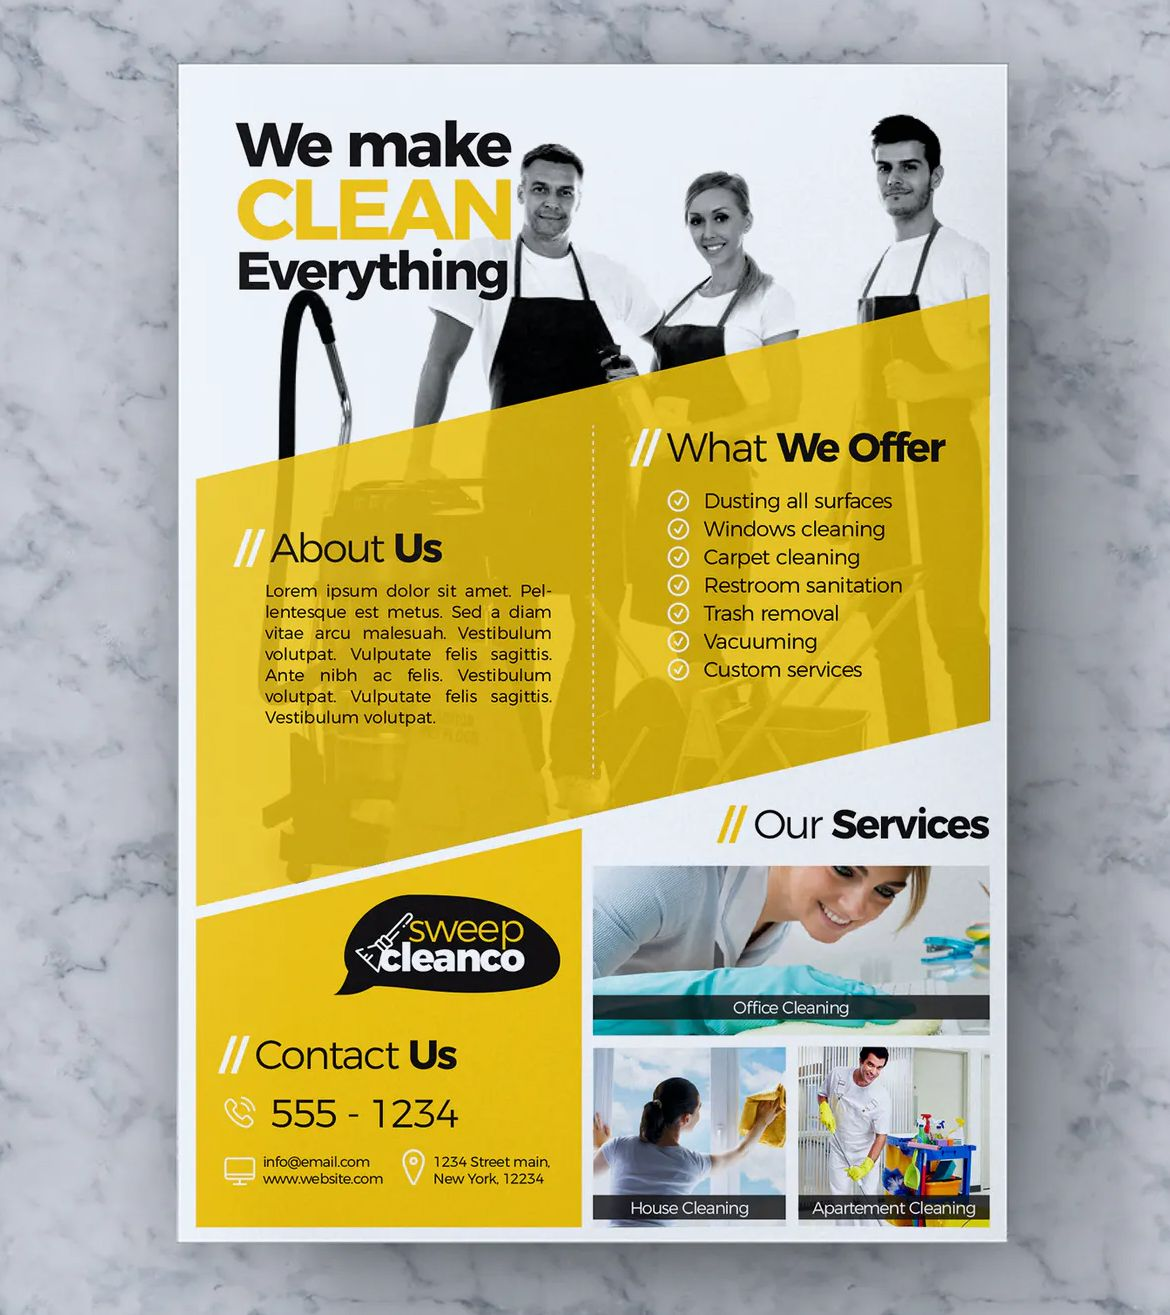 Cleaning Service Flyer Template Vol 03 By Rahardicreative On Envato Elements In 2021 Cleaning Service Flyer Flyer Template Flyer House cleaning flyers template free